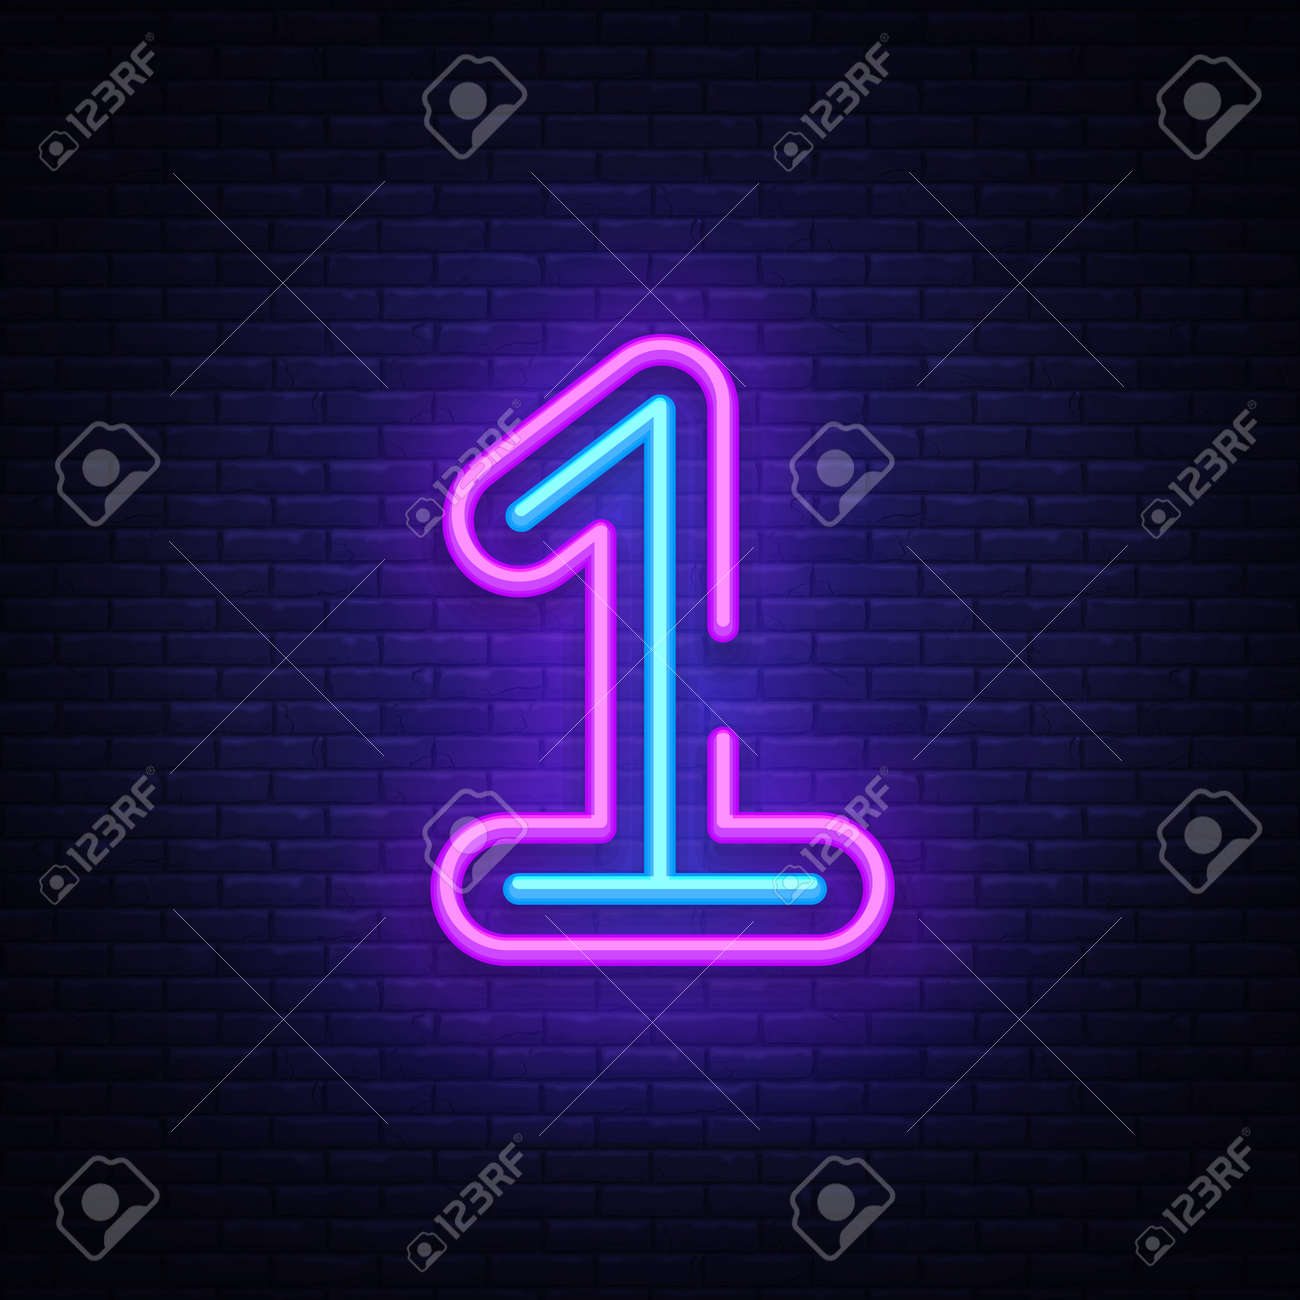 Number One symbol neon sign vector. First, Number One template neon icon, light banner, neon signboard, nightly bright advertising, light inscription. Vector illustration. - 103865599